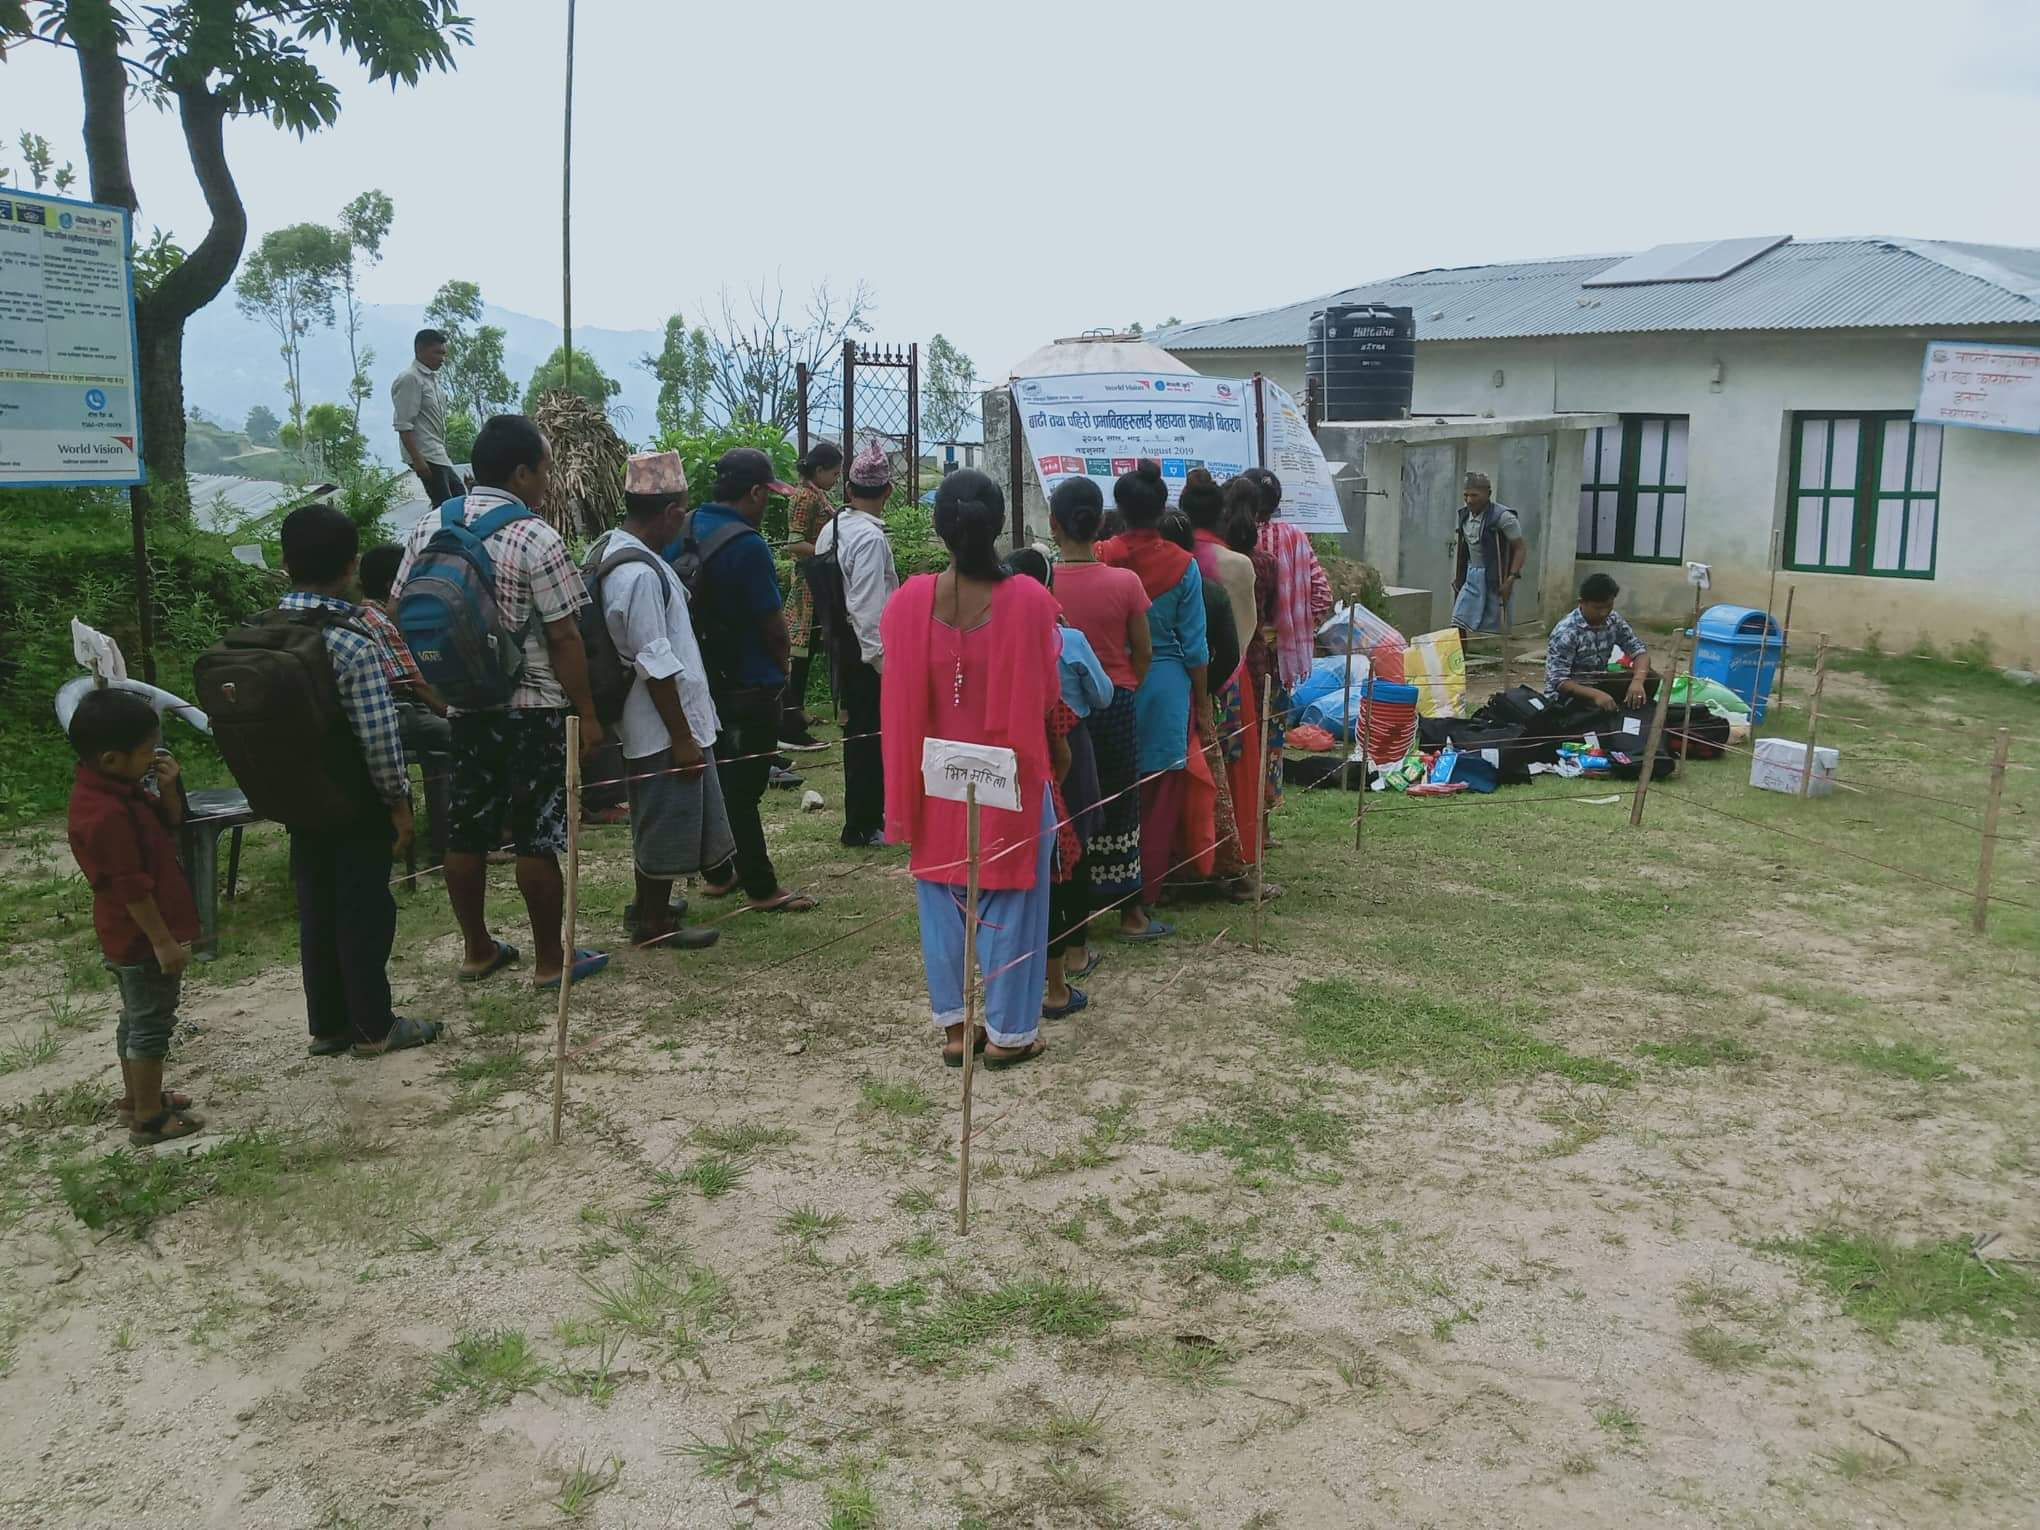 Flood-affected communities in queue to receive Life-Saving Aid